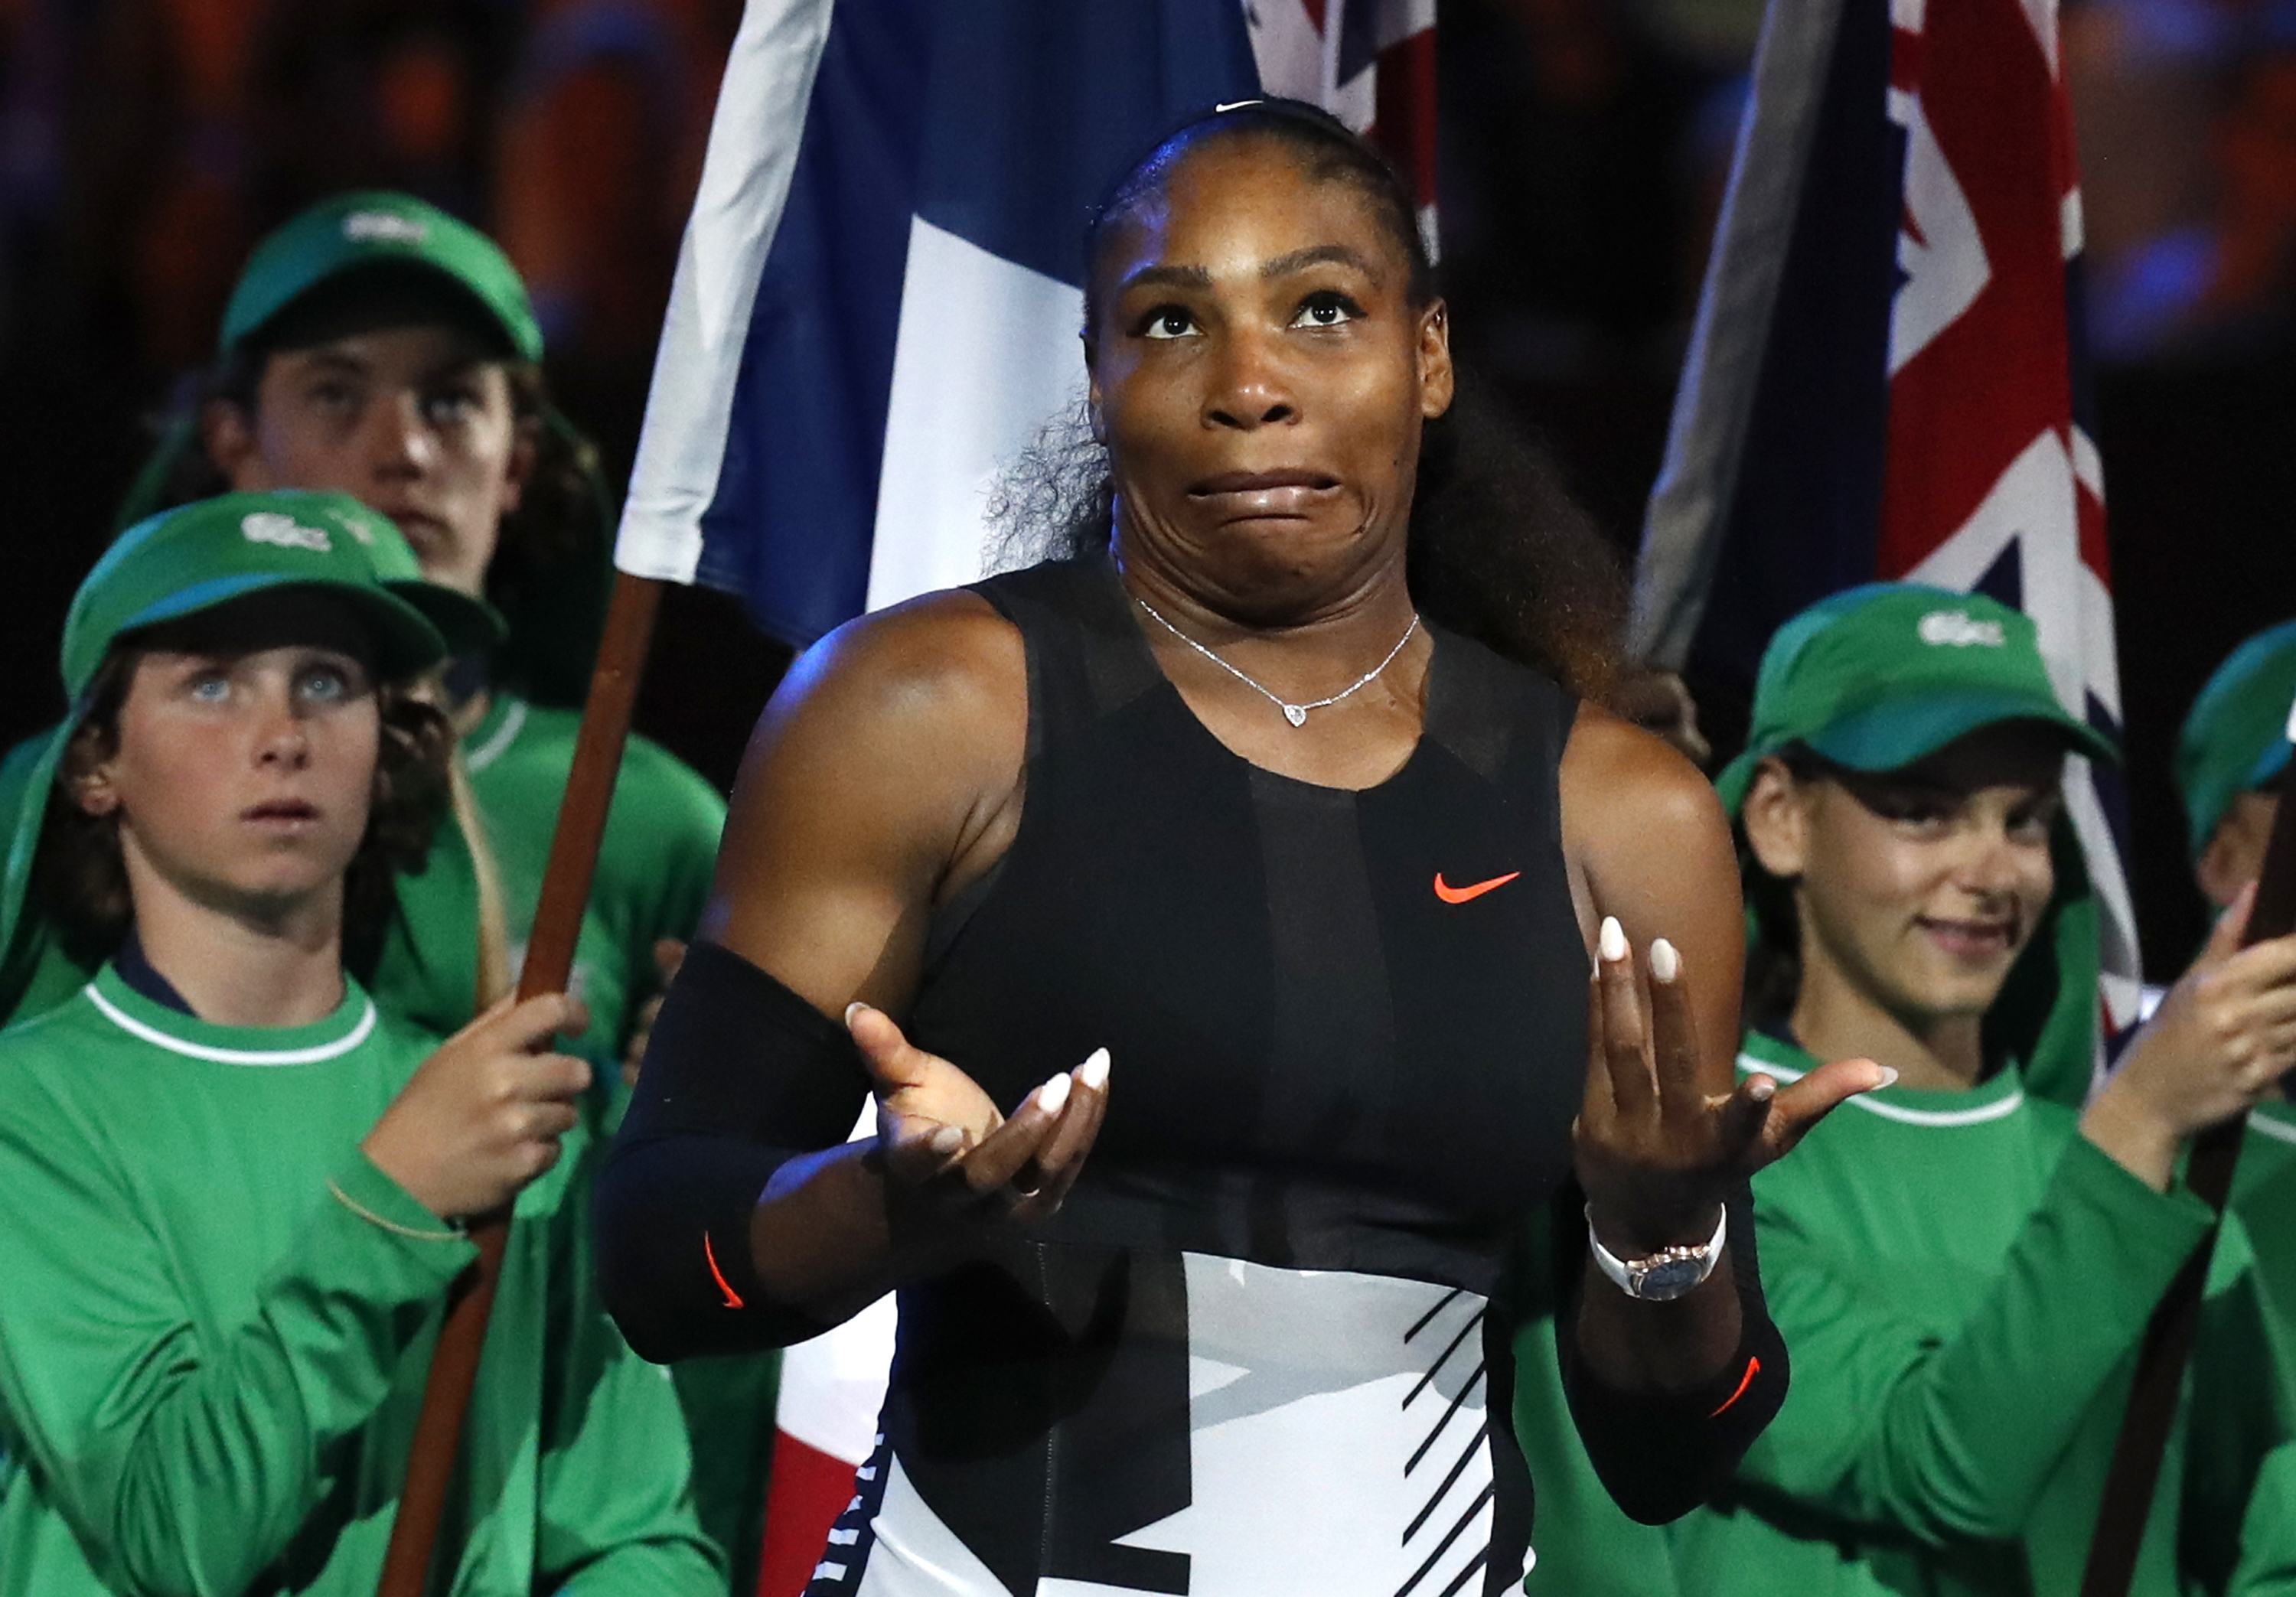 FILE - In this Jan. 28, 2017, file photo, Serena Williams reacts after defeating her sister Venus during their women's singles final at the Australian Open tennis championships in Melbourne, Australia. Williams said on April 25, 2017, at the TED2017 Confe